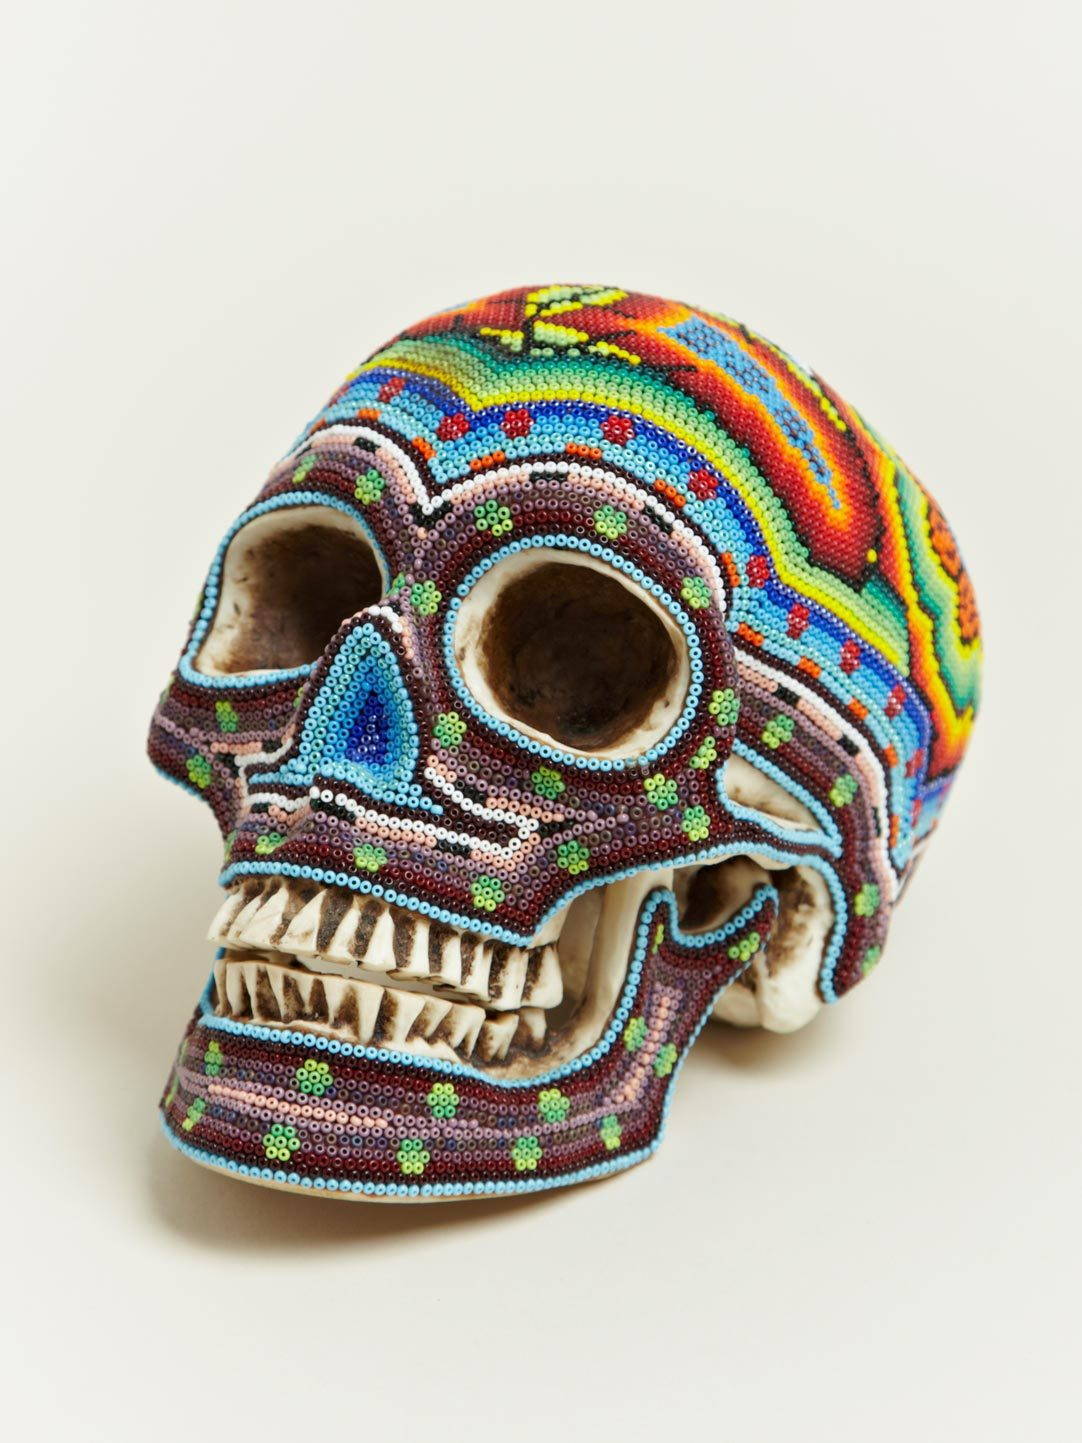 (via Our Exquisite Corpse Large Beaded Skulls | LN-CC)